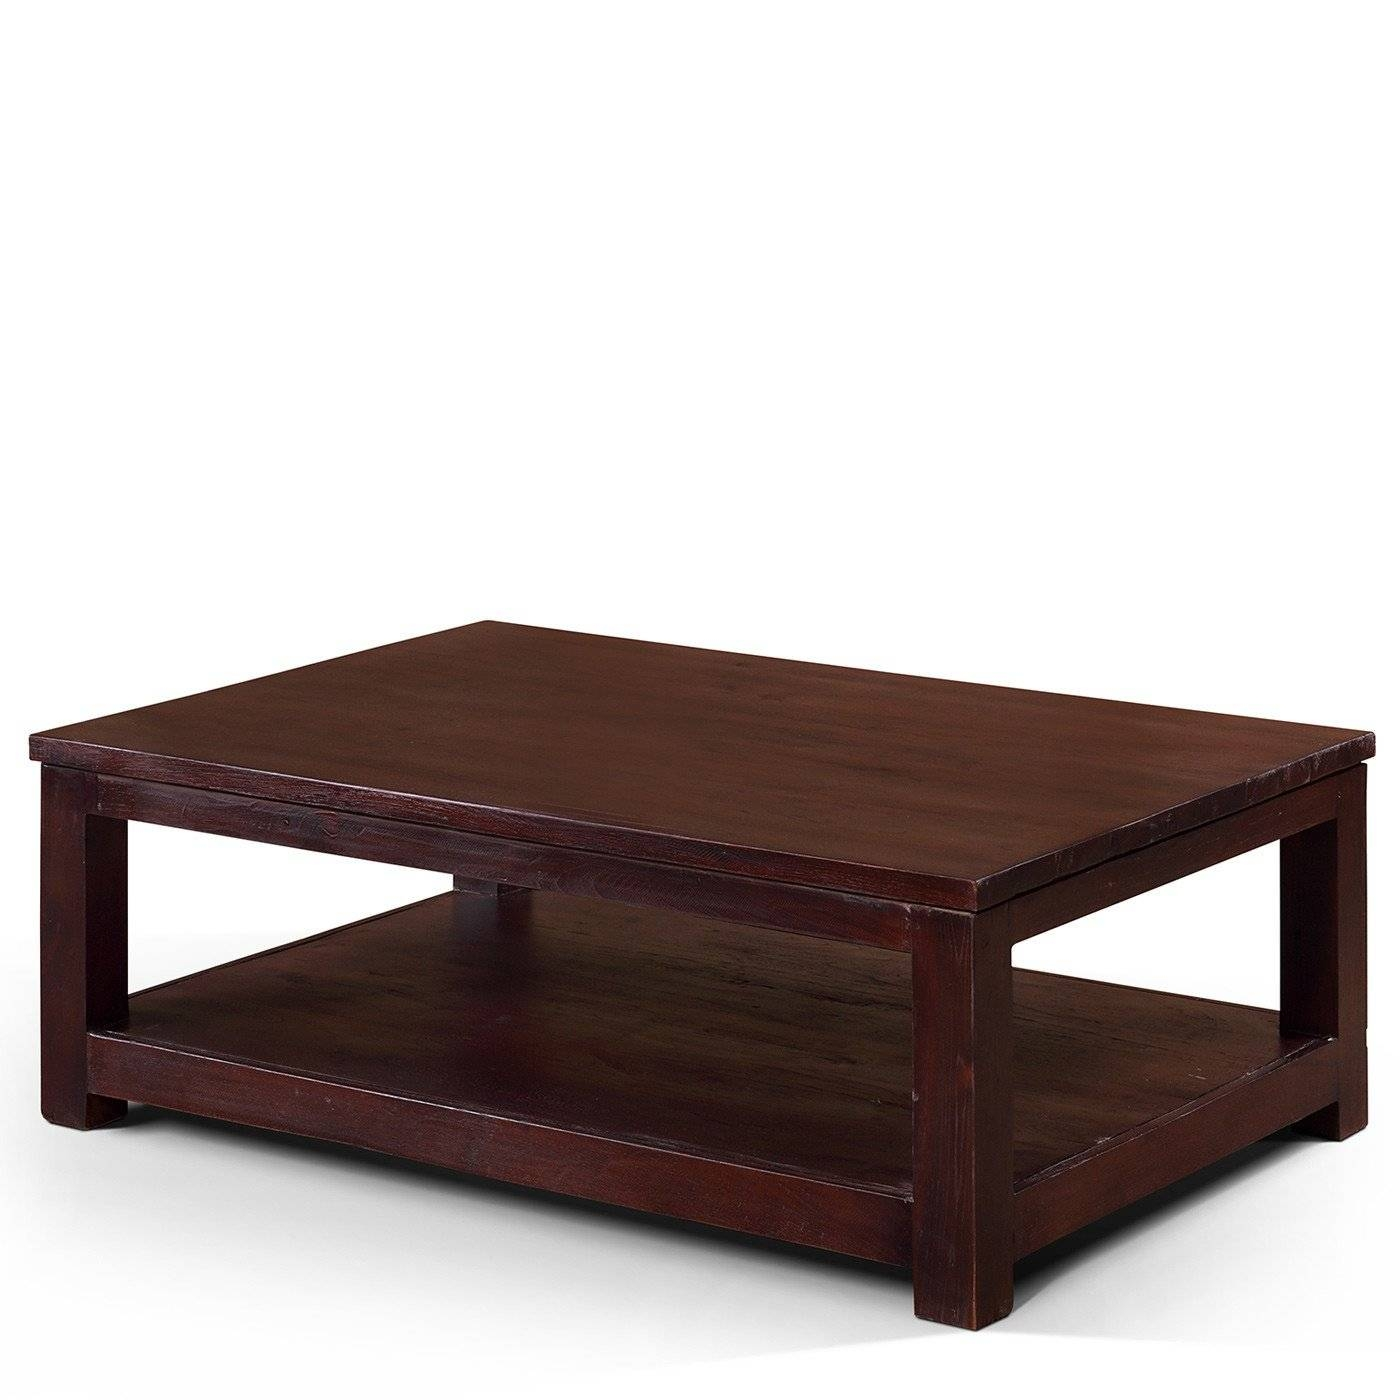 Coffee Table. Surprising Cube Coffee Table Designs: Popular Dark with regard to Dark Brown Coffee Tables (Image 8 of 30)